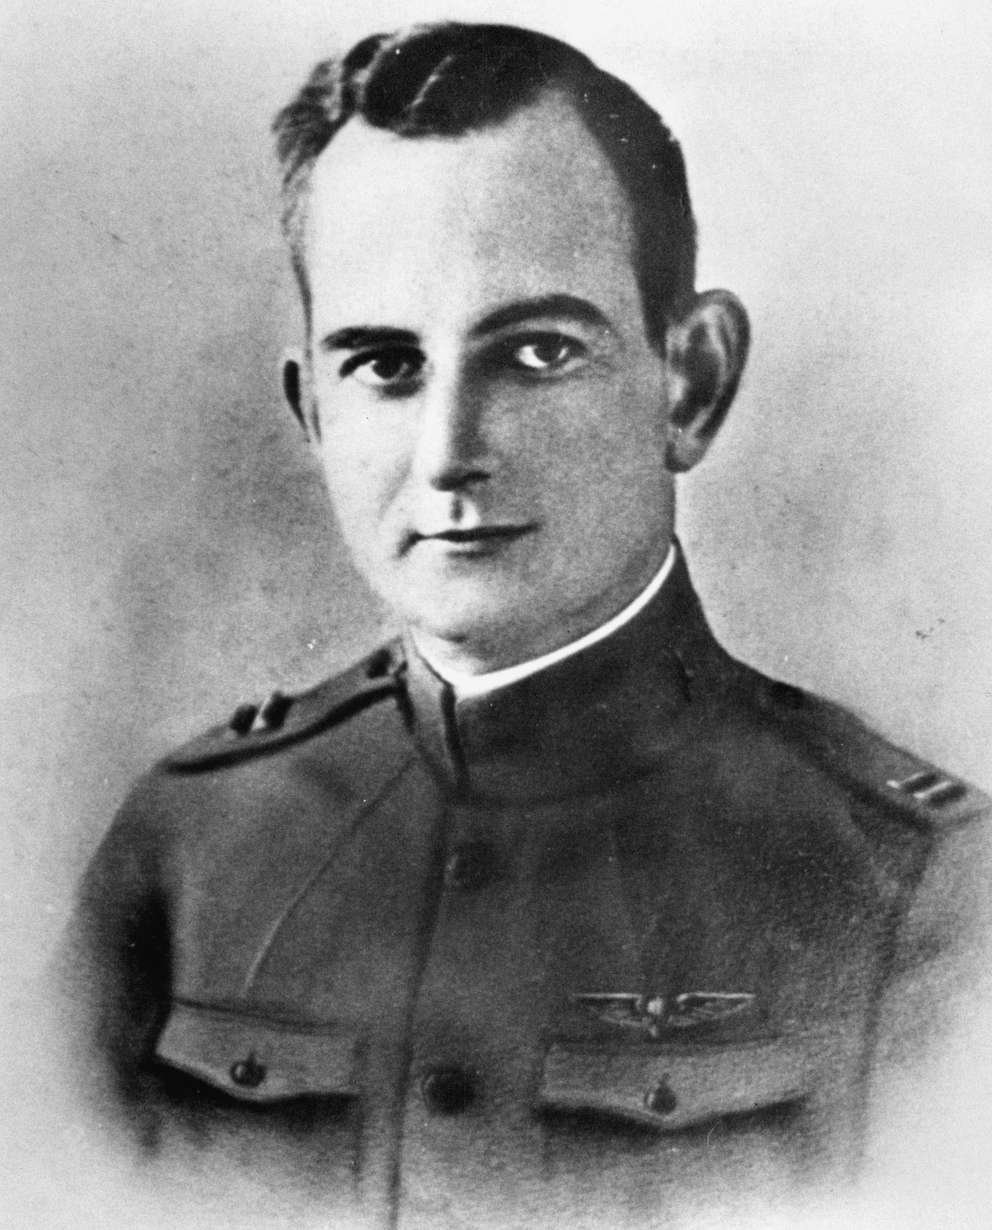 Capt. Dale Mabry, the man for whom the highway was named, was 30 years old when he was killed in January 1922. [Times archives]